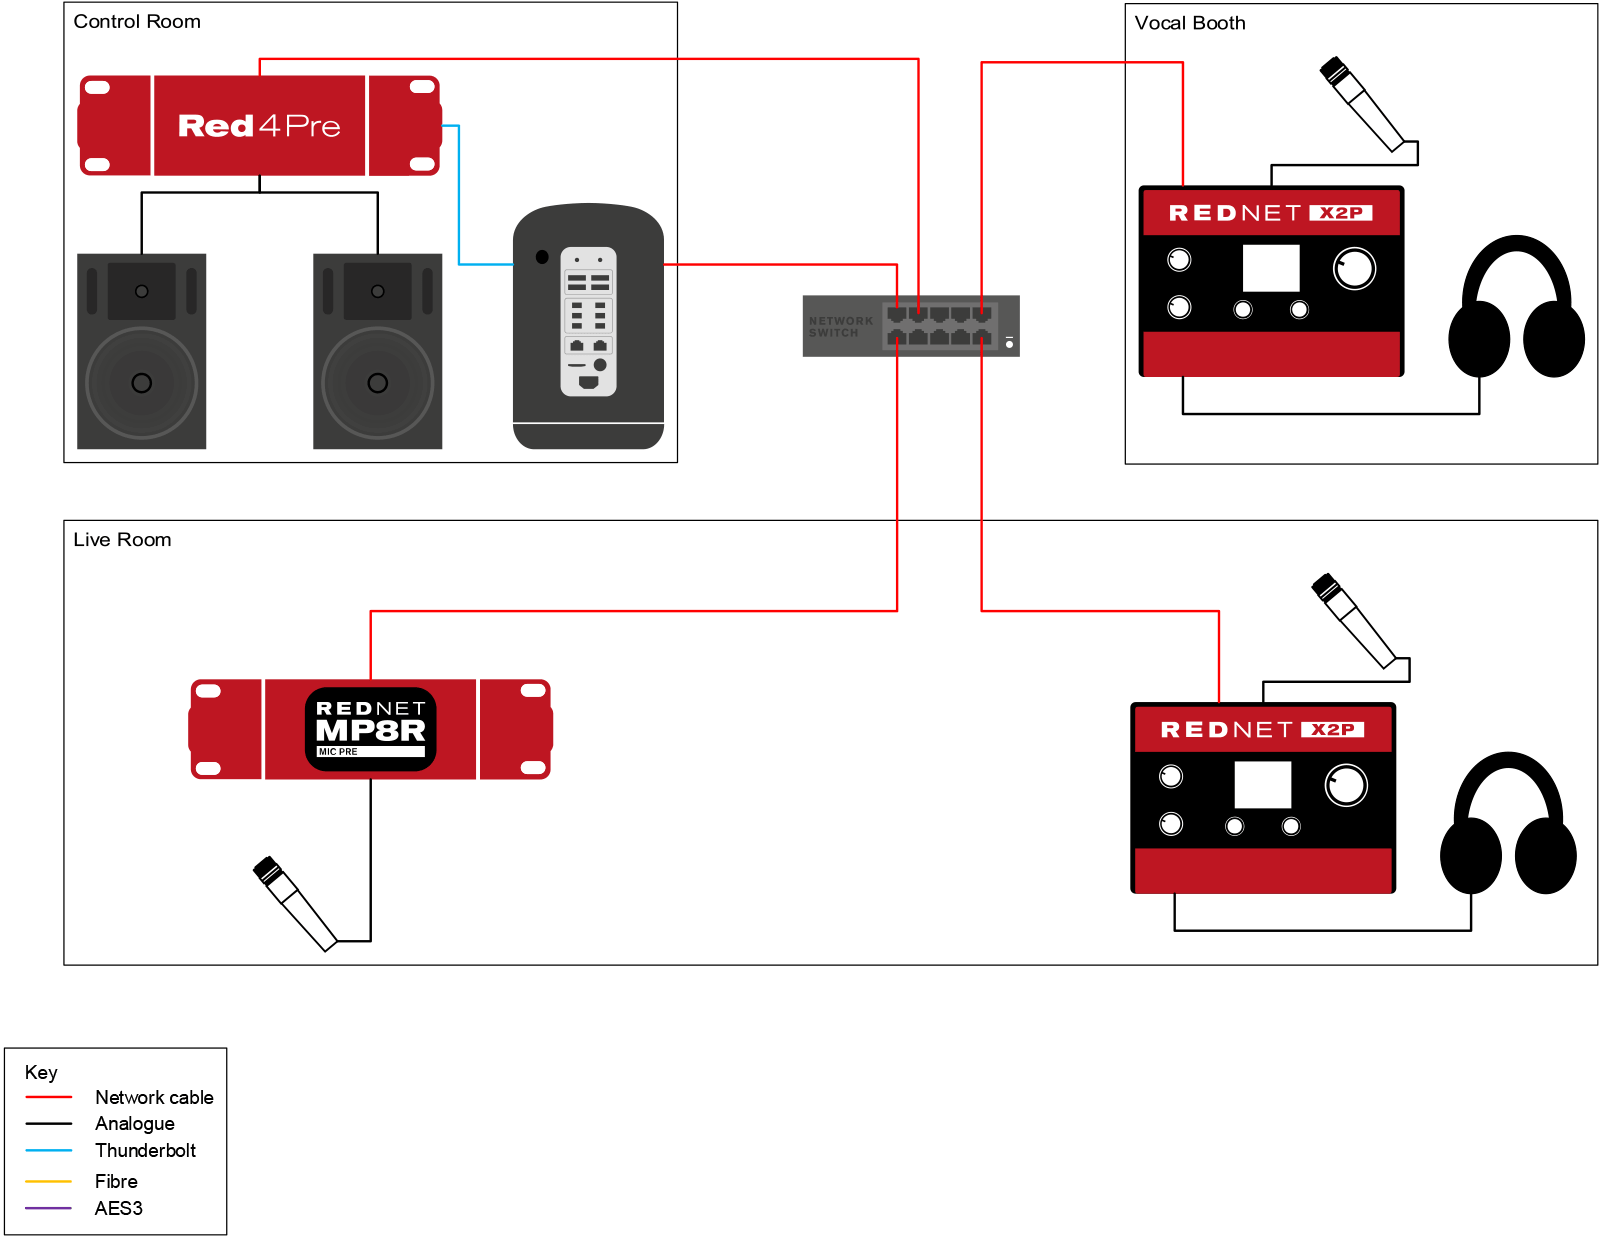 Focusrite Pro Buying Guide | Sweetwater